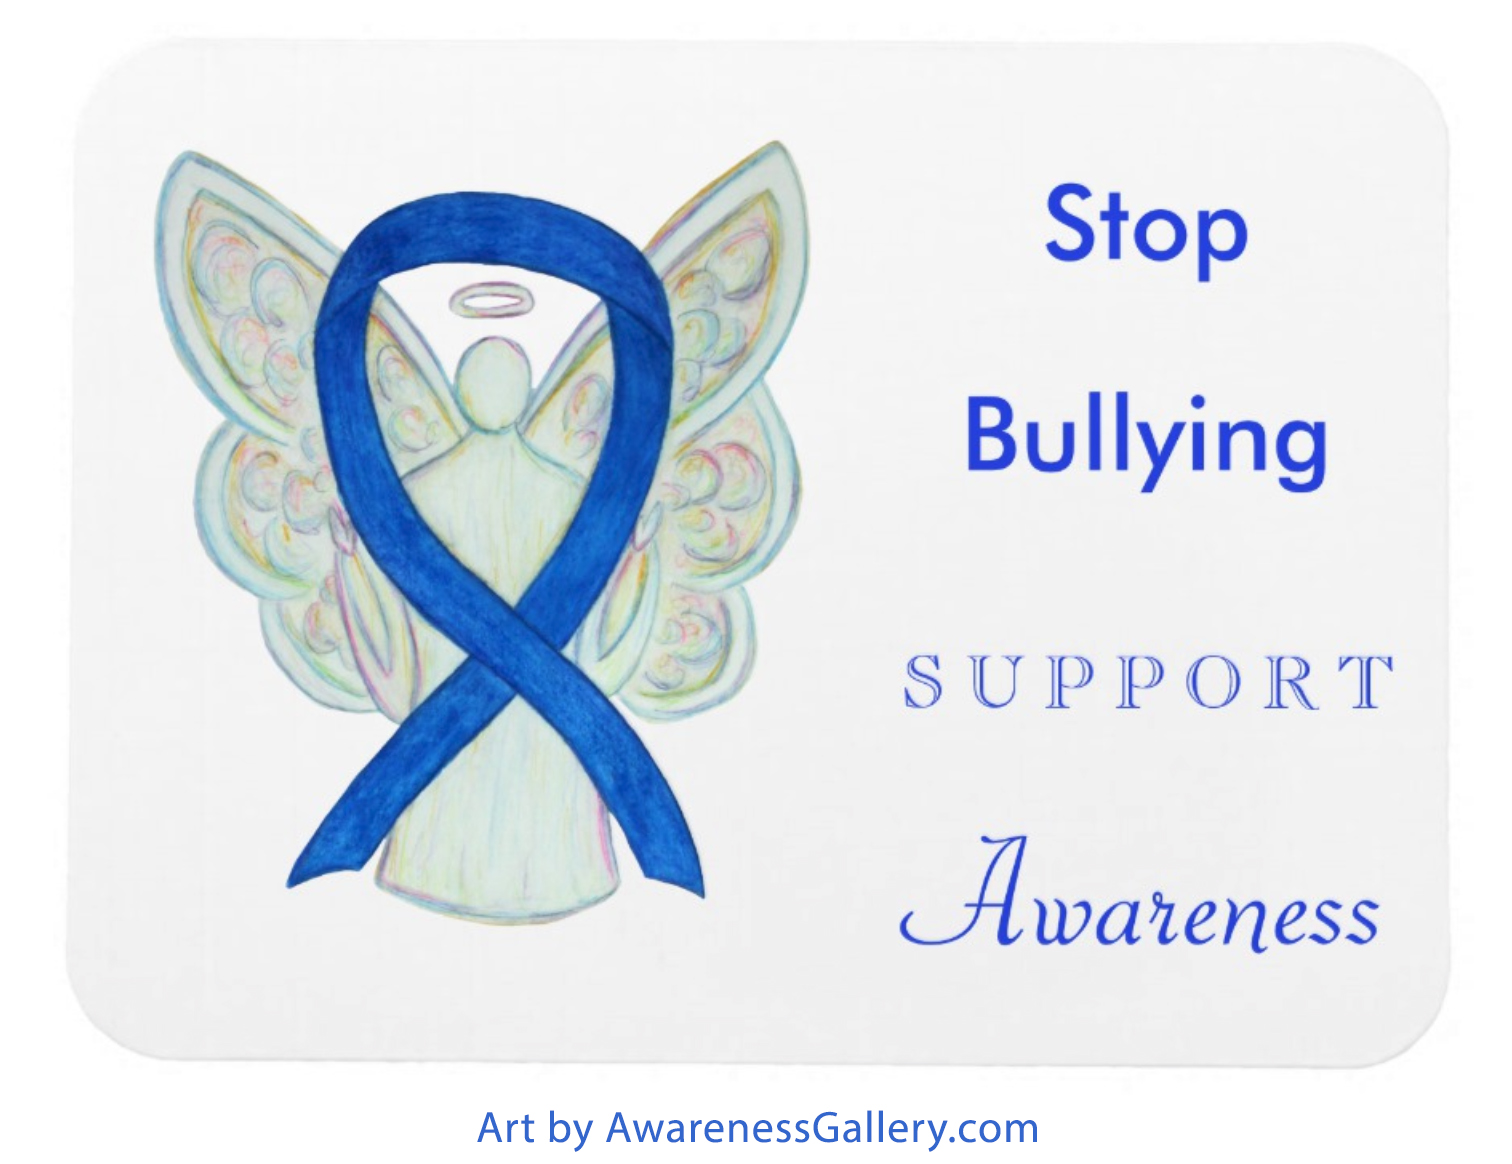 Stop Bullying Awareness Ribbon Custom Merchandise for Sale